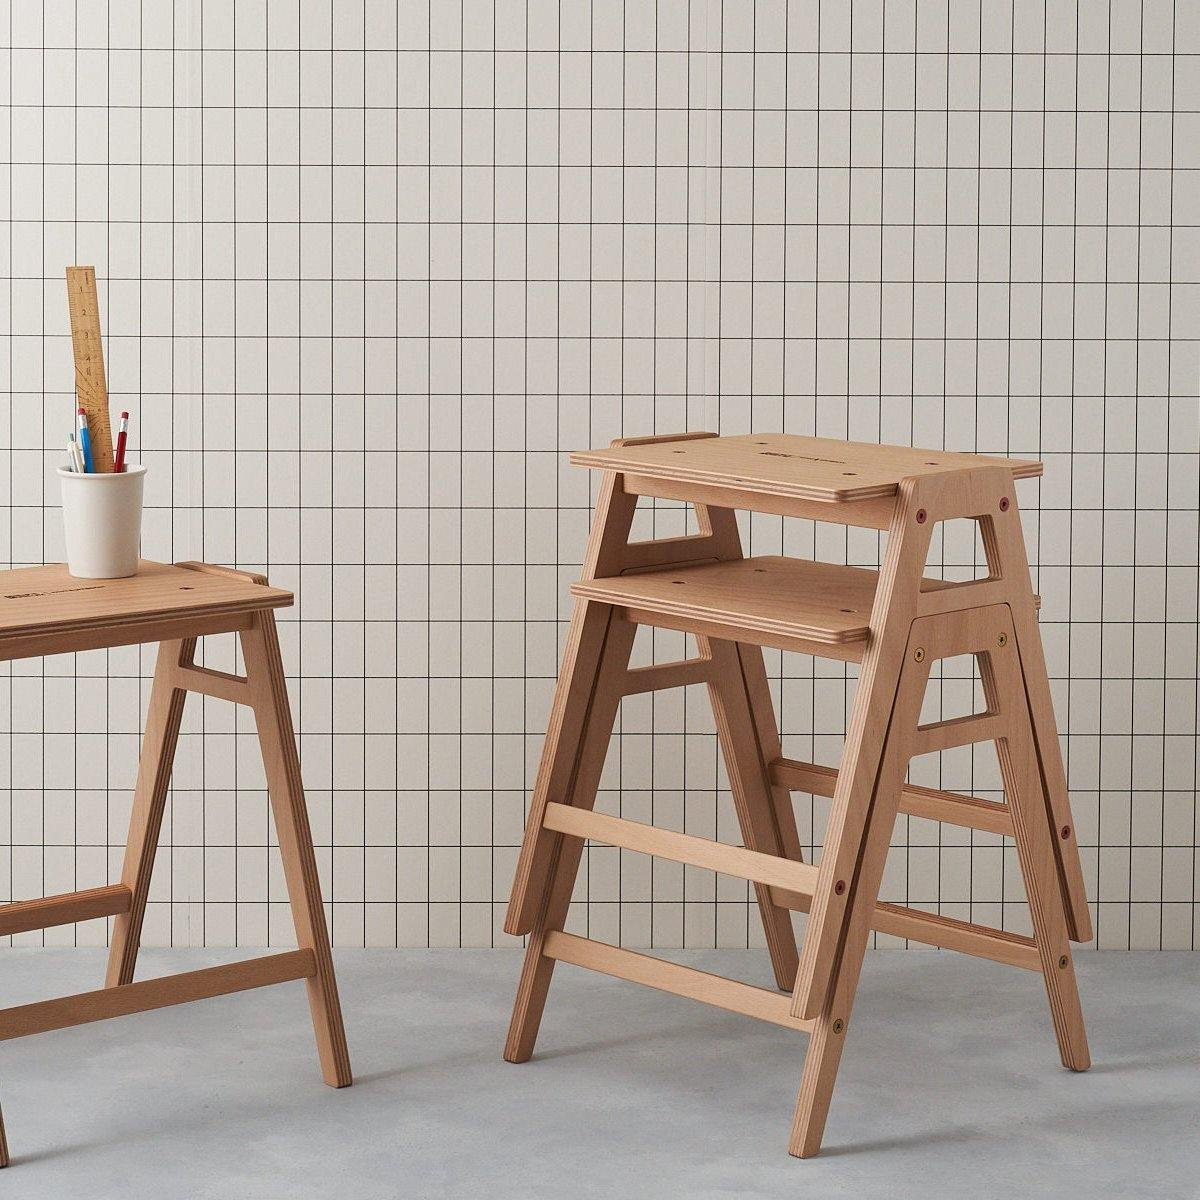 LDN Stool Lab KW3 SOR 7